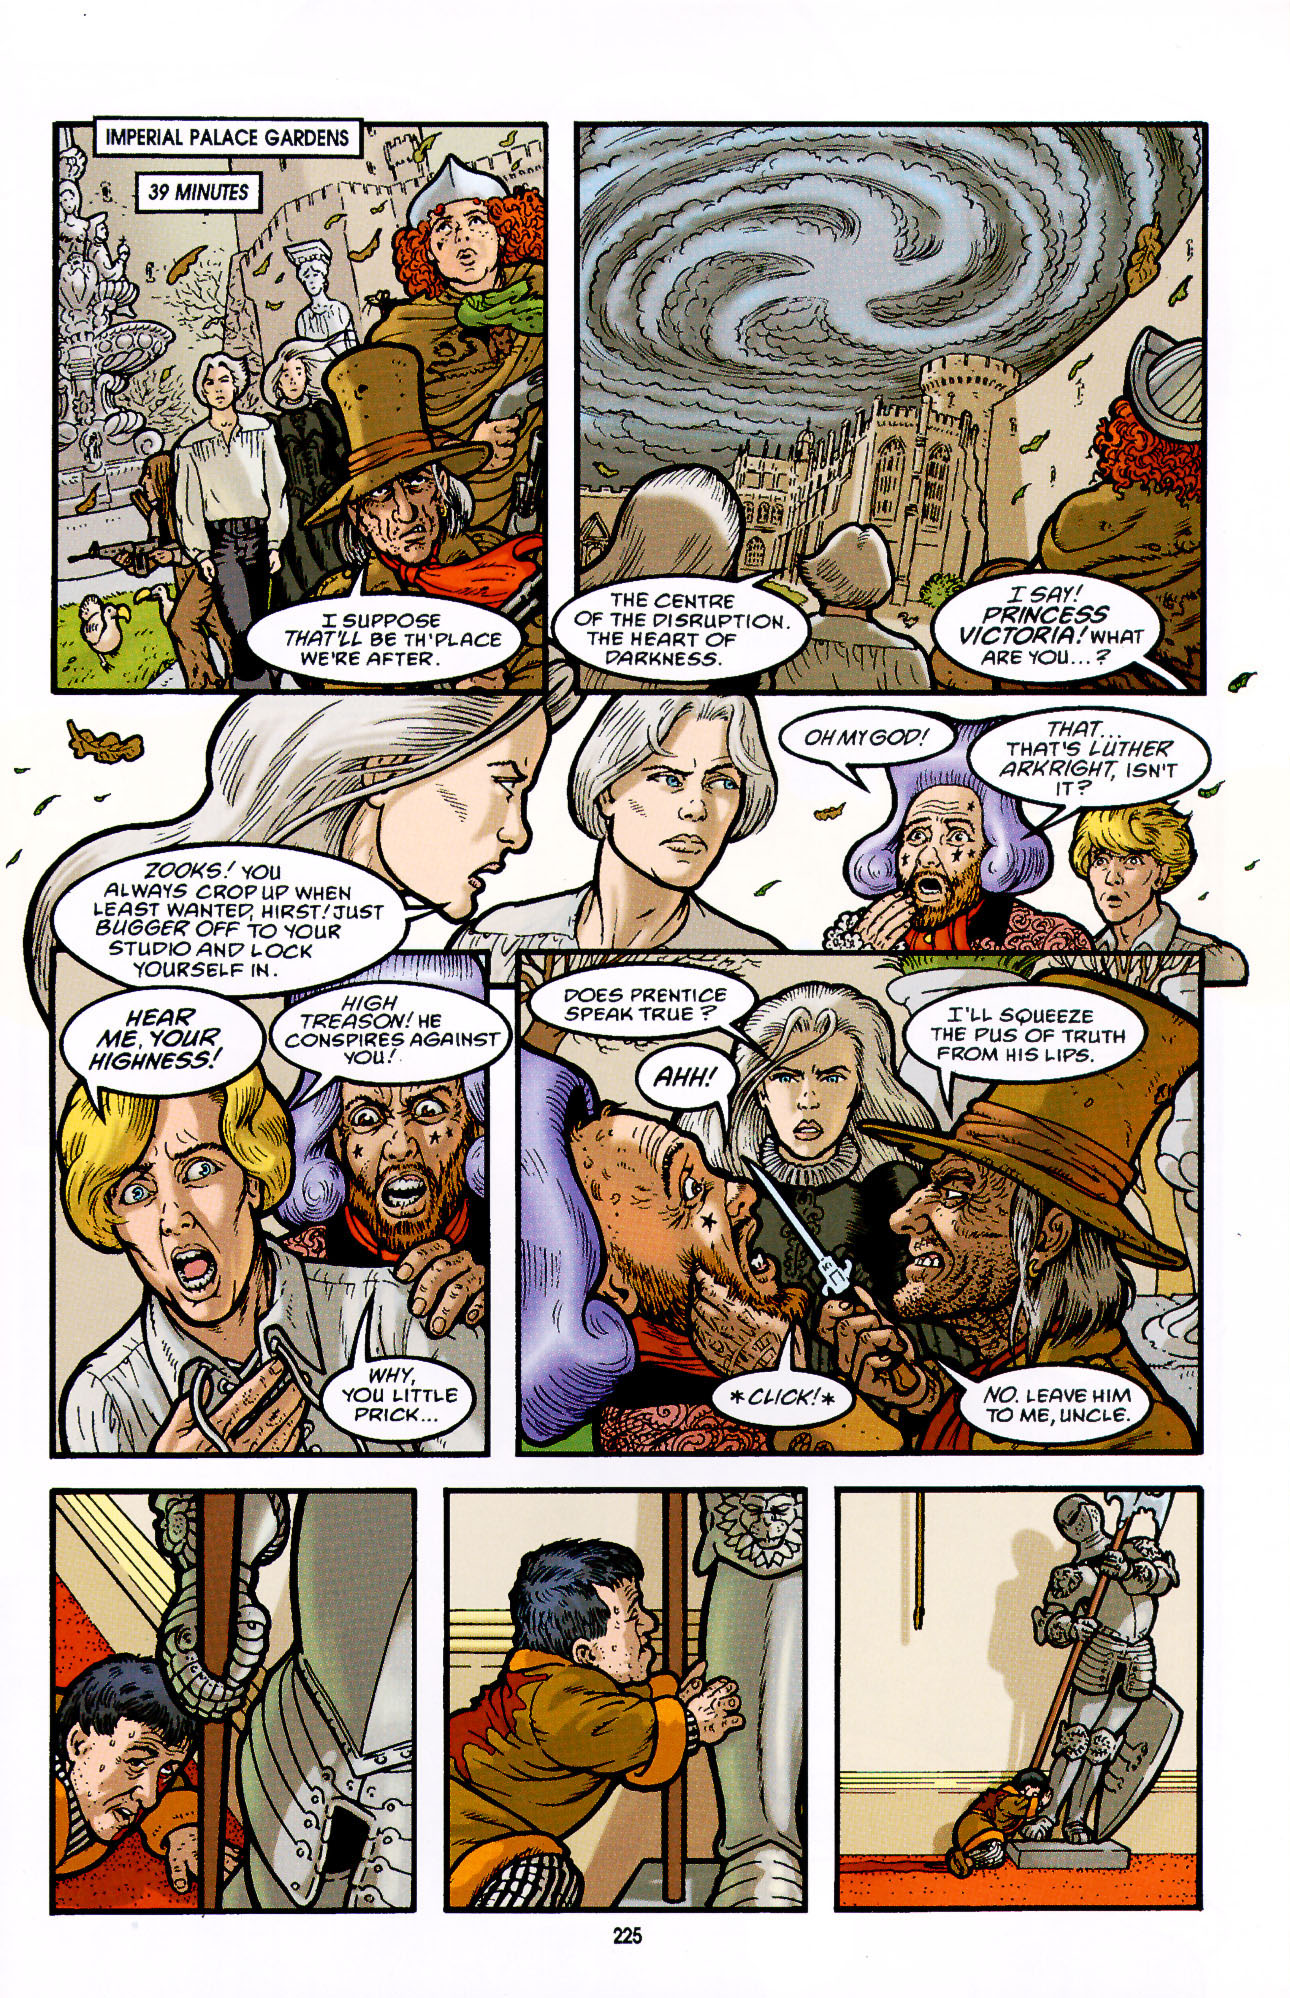 Read online Heart of Empire comic -  Issue #7 - 31